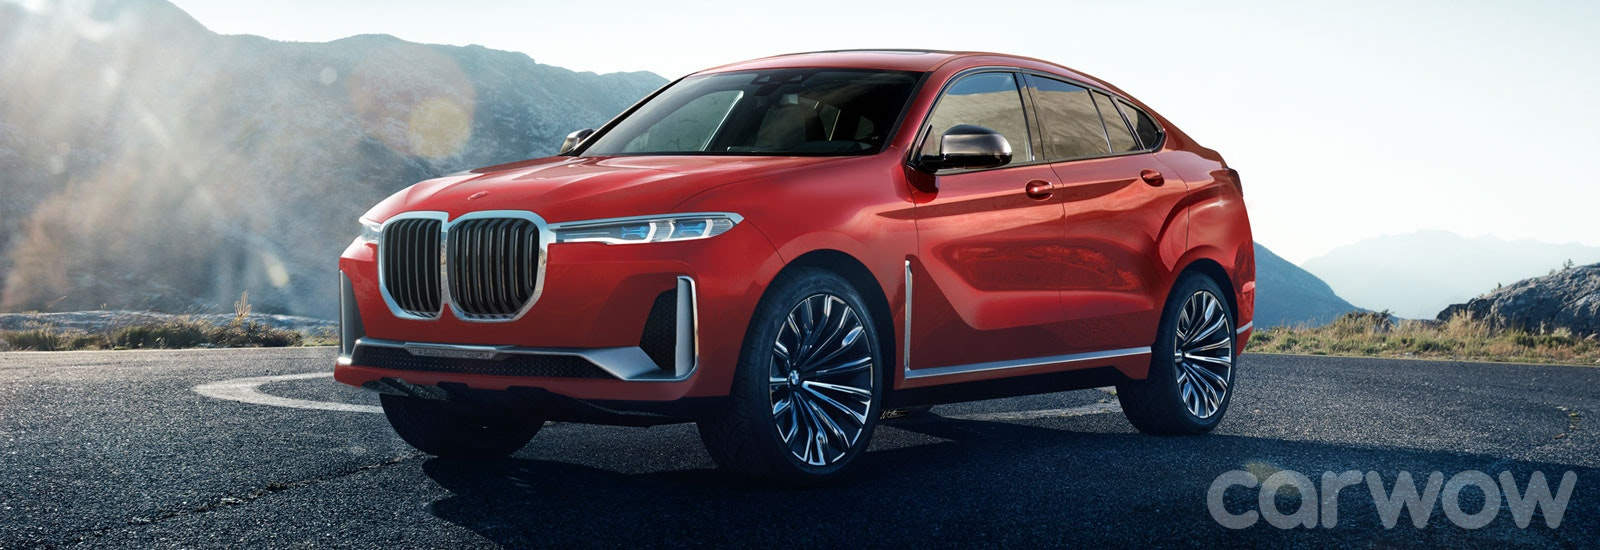 X8 Bmw >> 2019 BMW X8 price, specs and release date | carwow